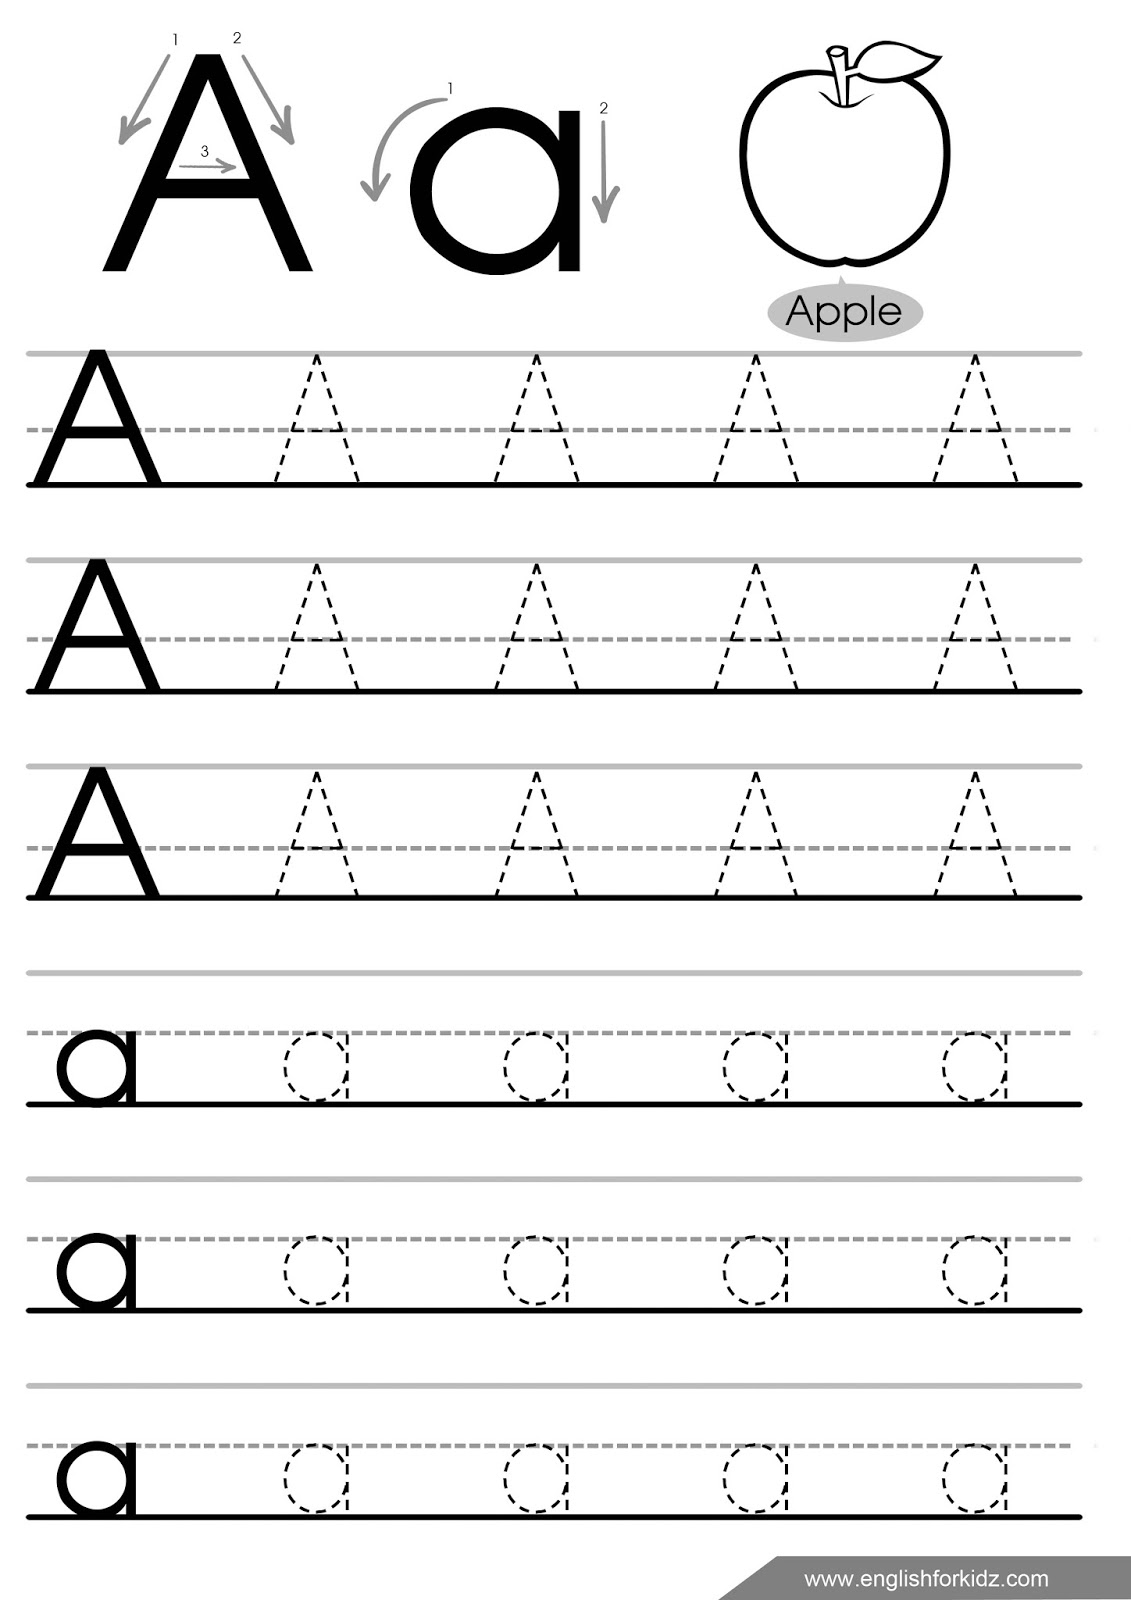 Letter tracing worksheets letters a j letter a tracing worksheet english for kids robcynllc Gallery